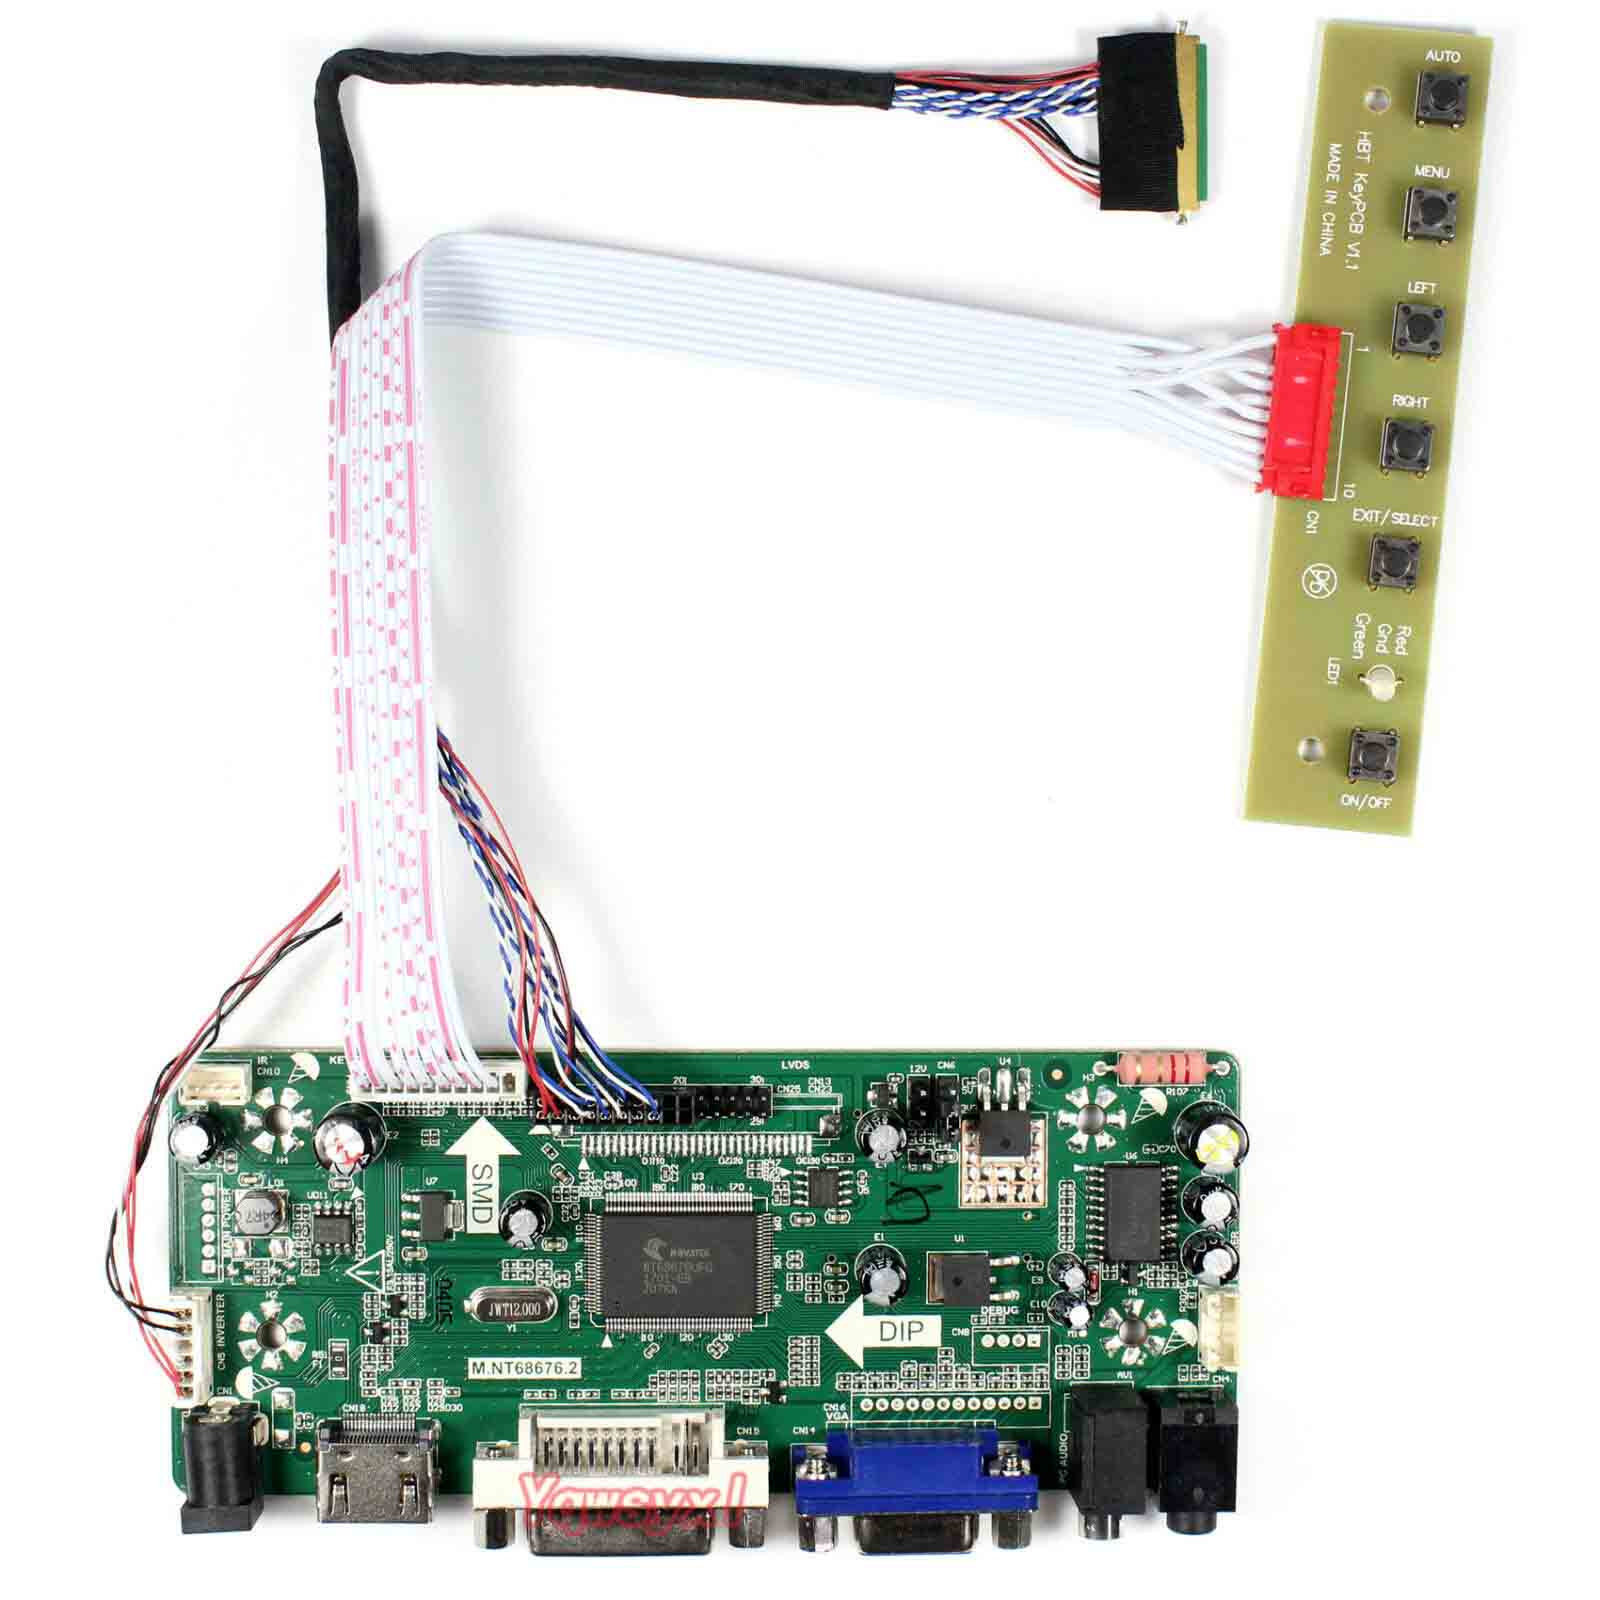 Yqwsyxl Control Board Monitor Kit For N173HGE-L21 N173HGE L21 HDMI+DVI+VGA LCD LED Screen Controller Board Driver